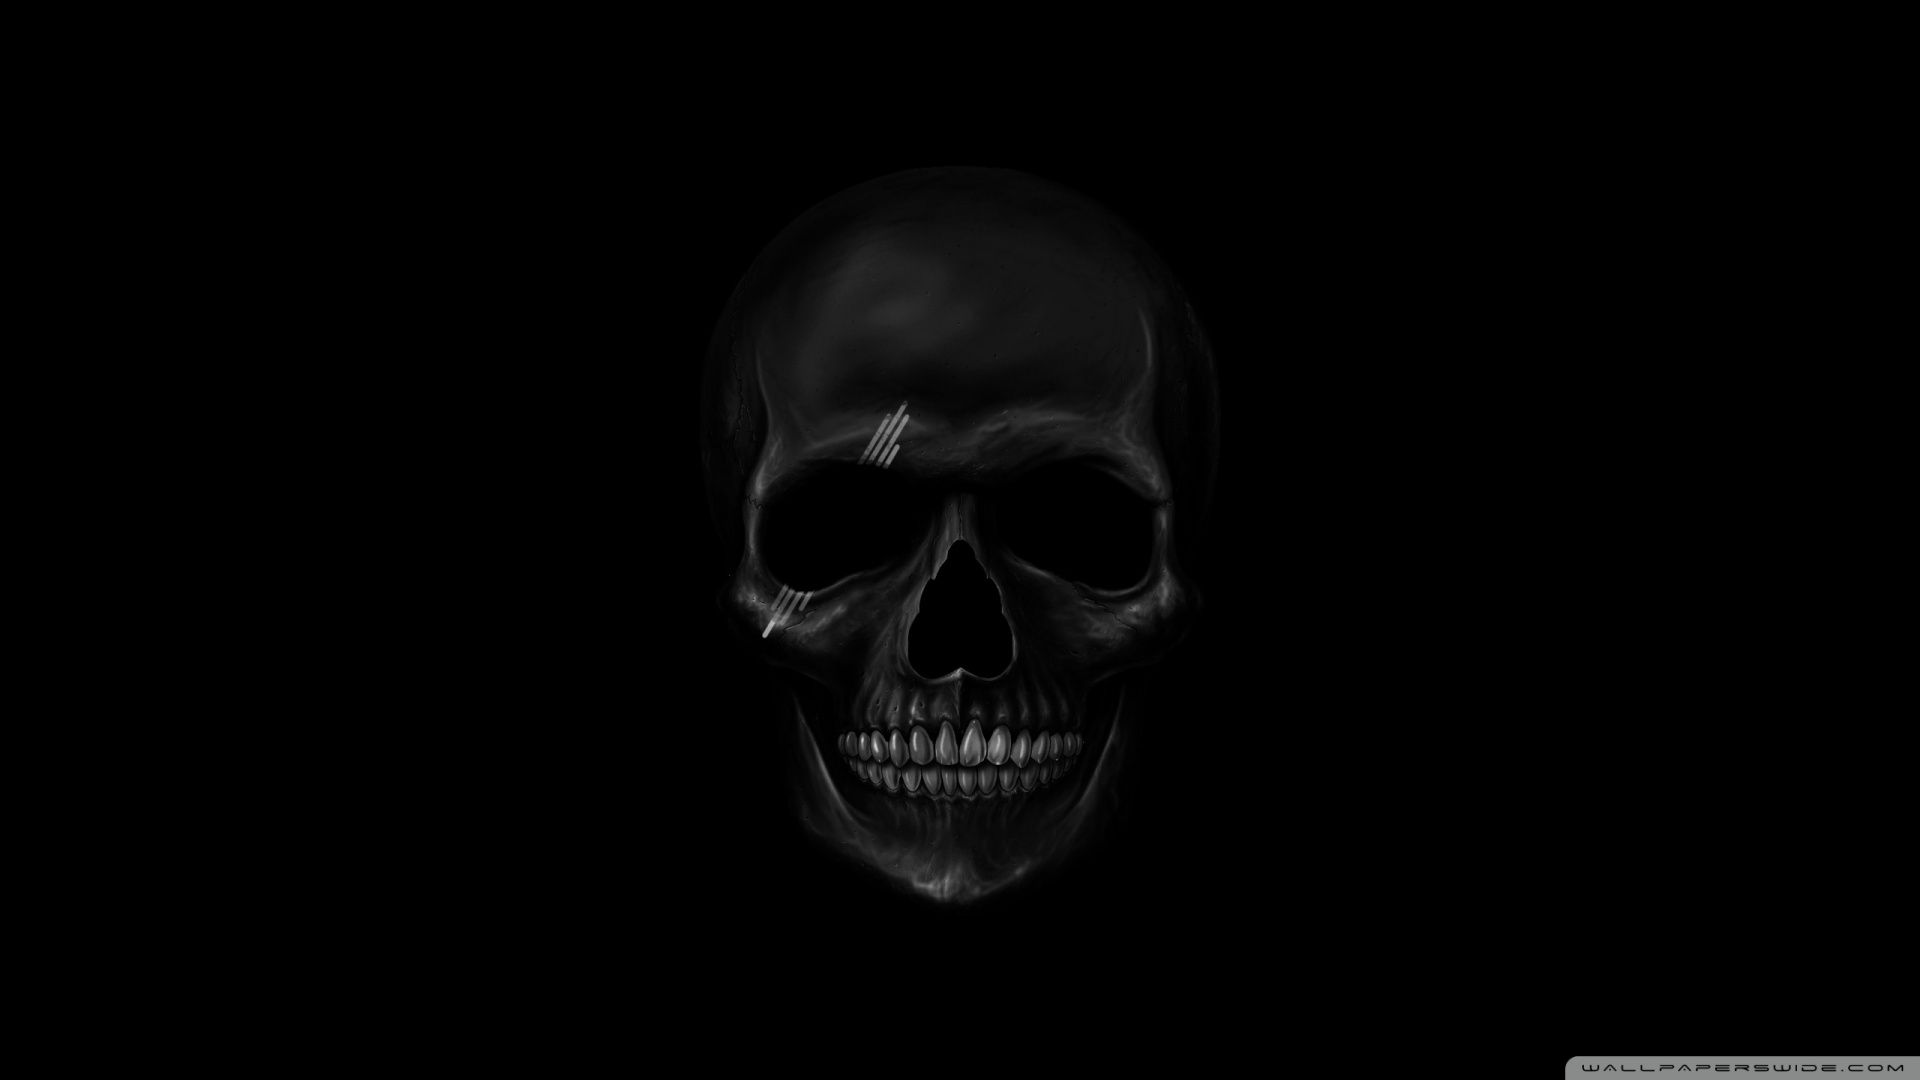 Skull Wallpapers 1920x1080 Group 90